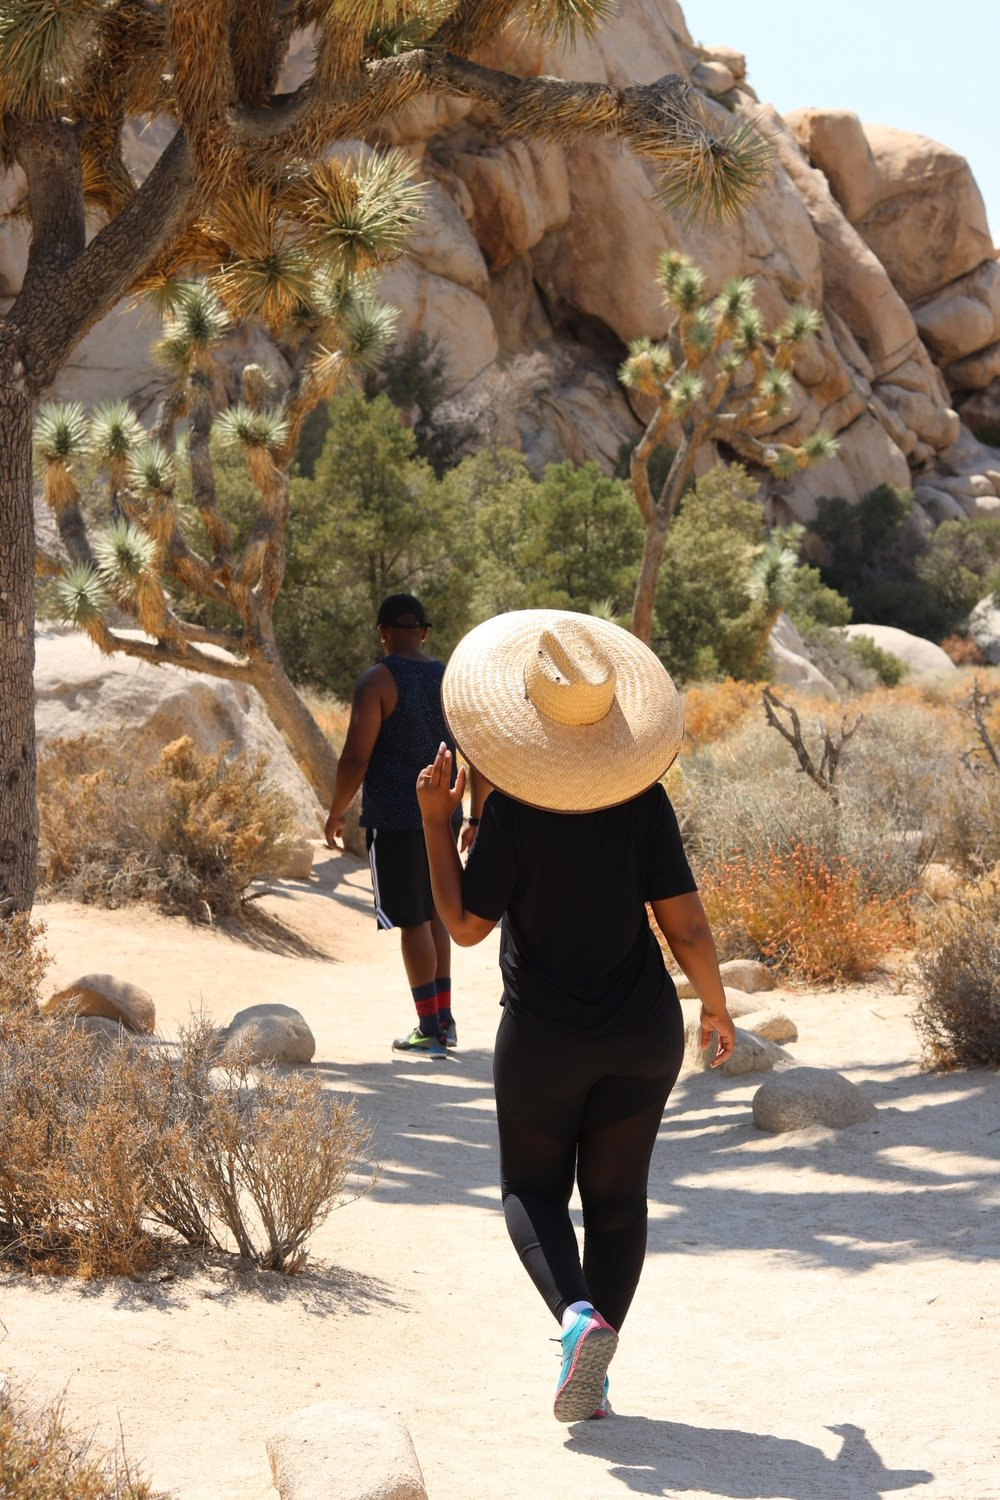 Hiking in Joshua Tree, California